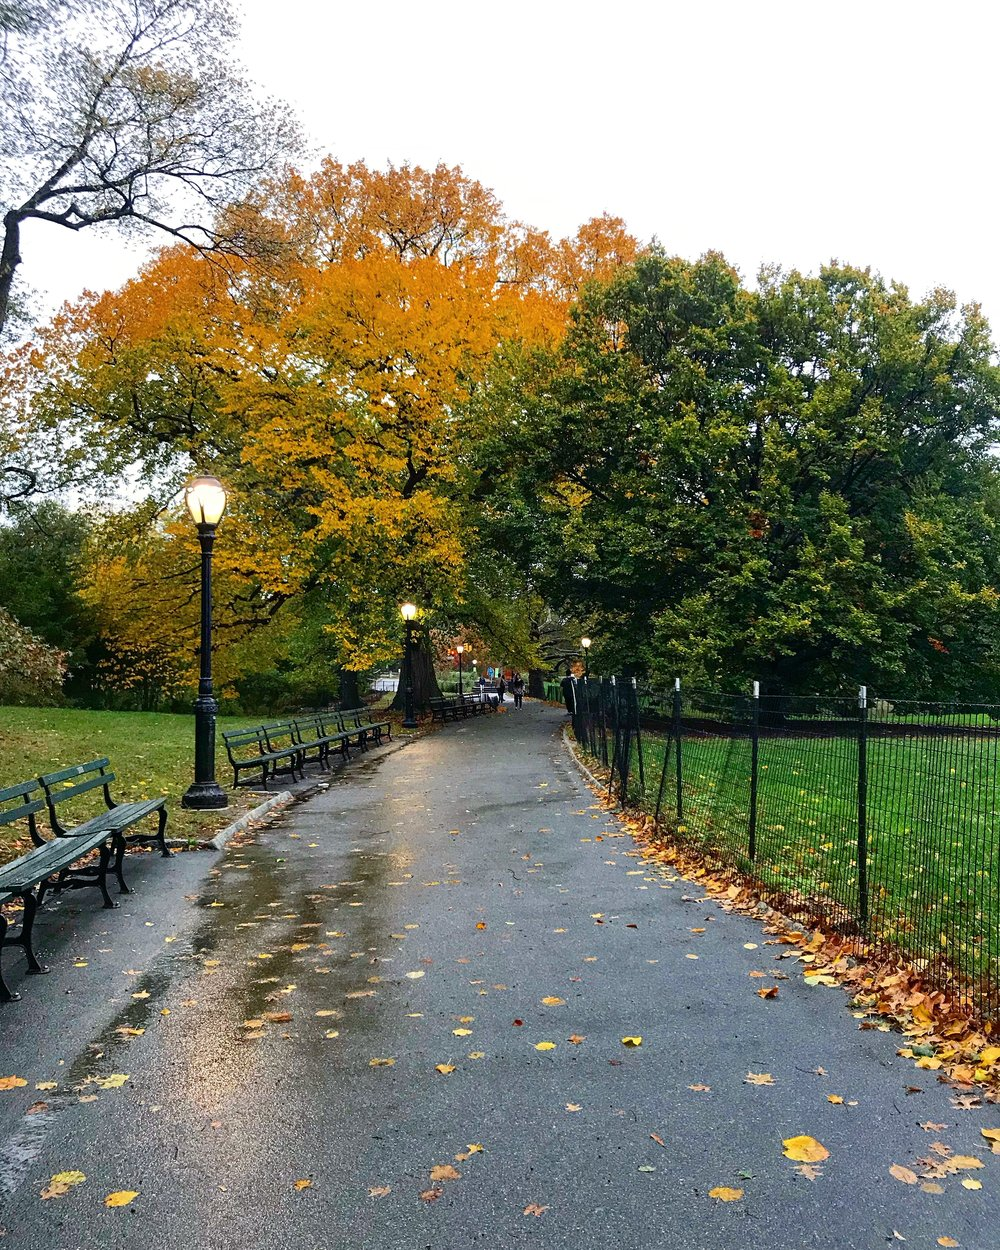 Central Park after Rain, 97th Street Transverse & 5th Ave - October 24th, 2017